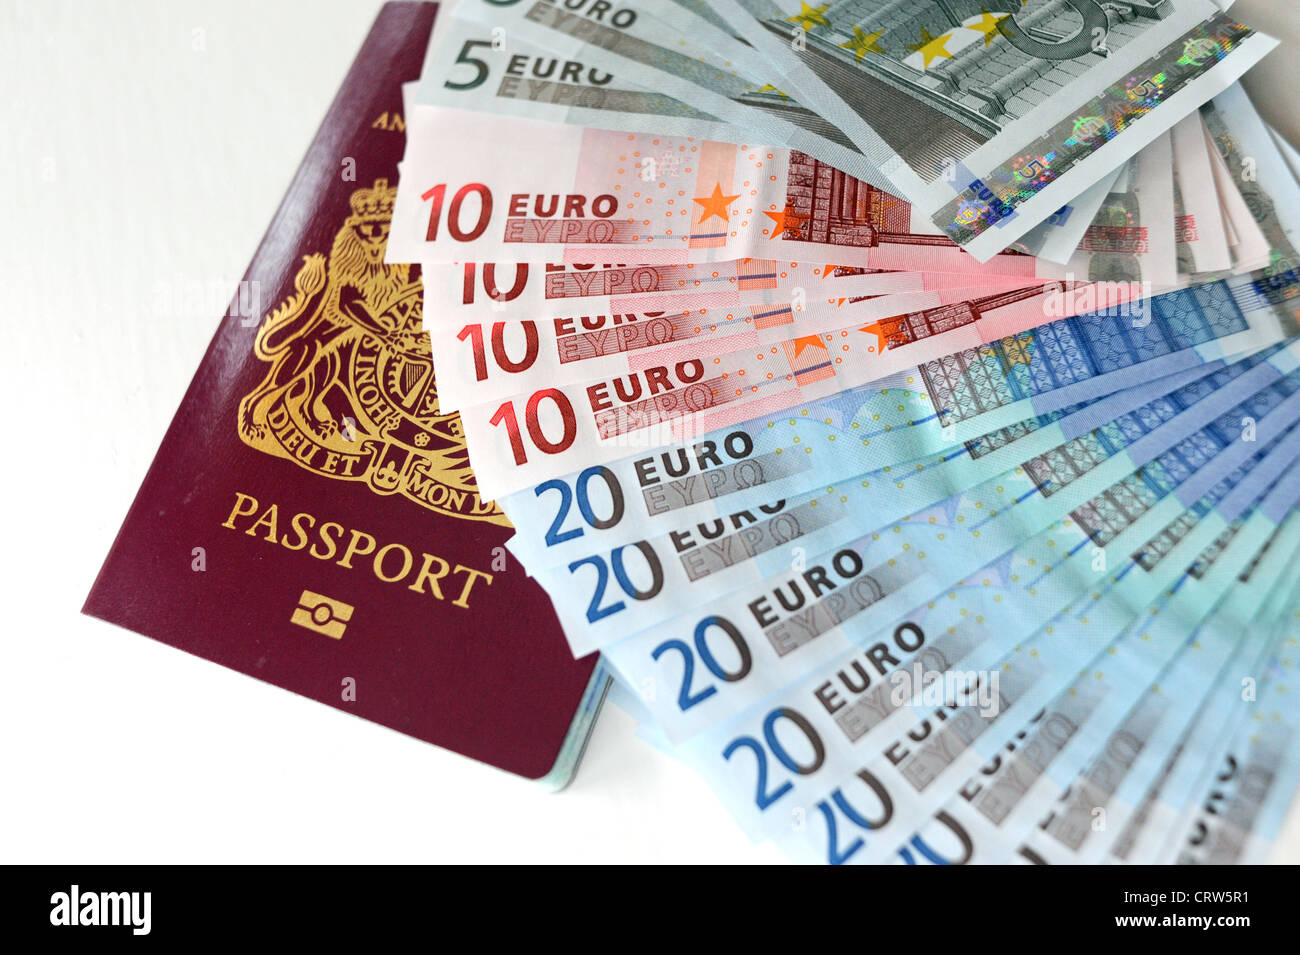 Selection of Euro currency notes in 5s 10s and 20s and a British passport - Stock Image